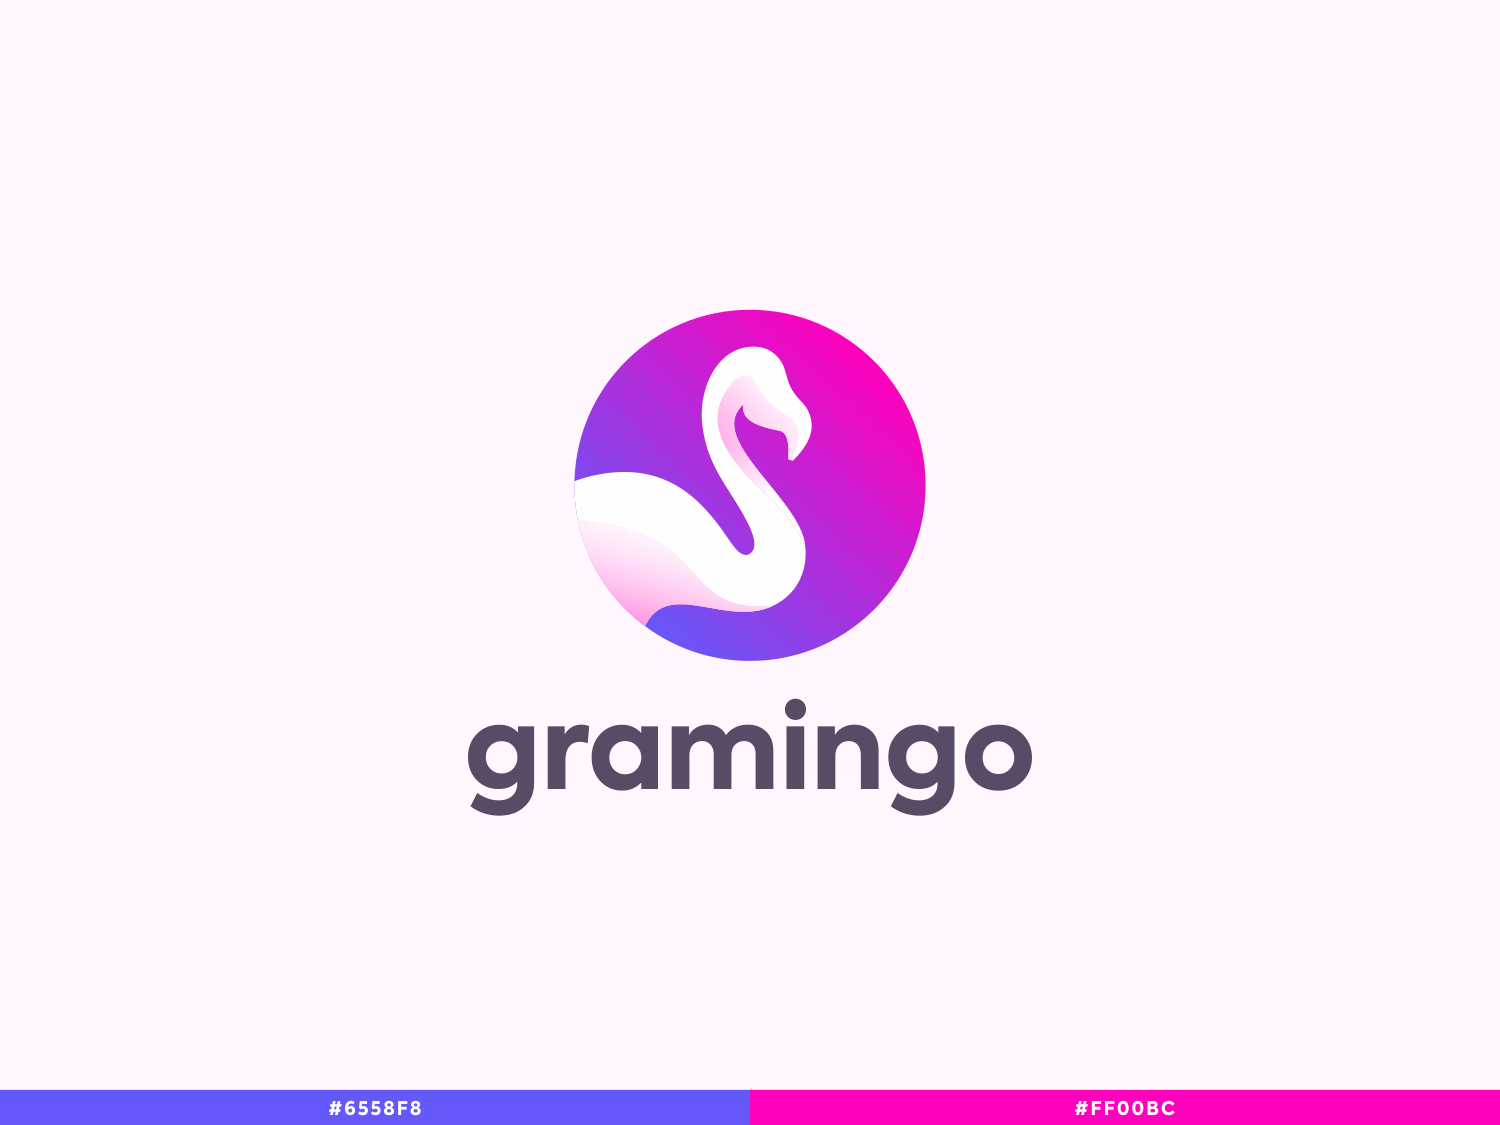 Gramingo design vector illustration logo branding icon minimal brand and identity monogram letter mark flat app negativespace monogram logo packagedesign ui ux